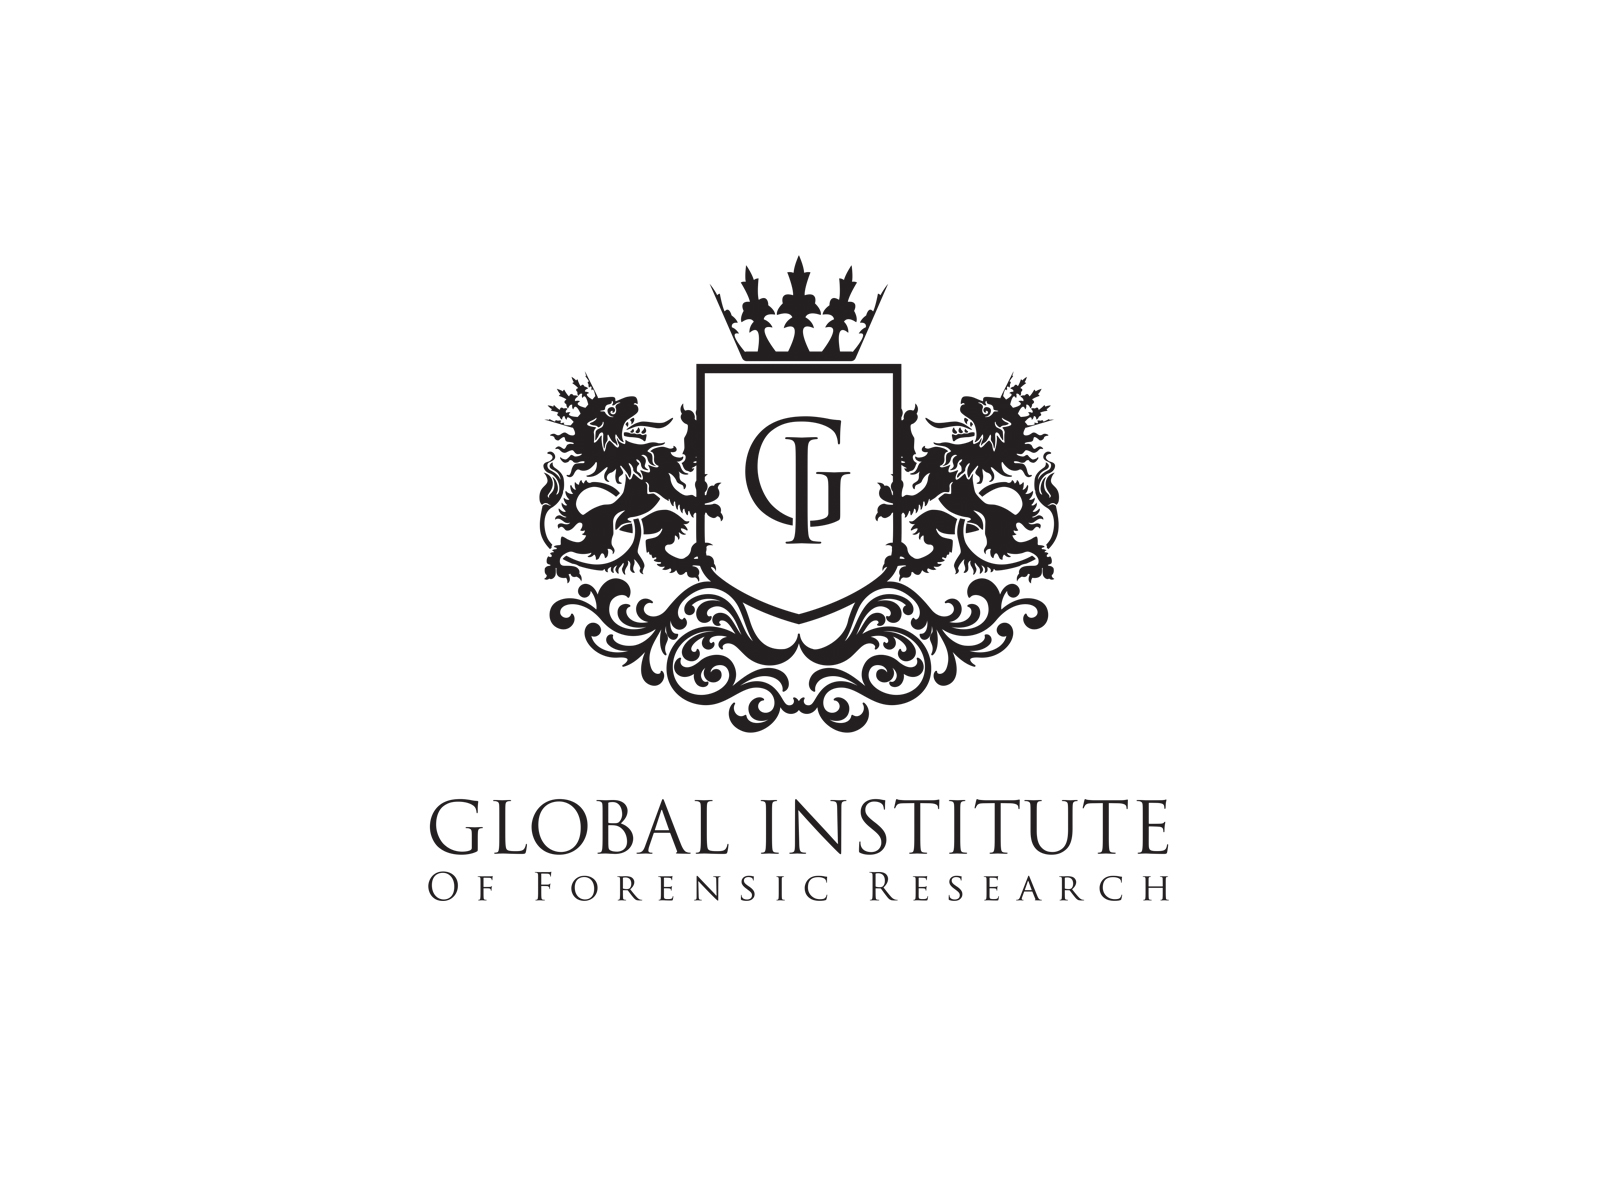 Multi-Health Systems Inc. and Global Institute of Forensic Research